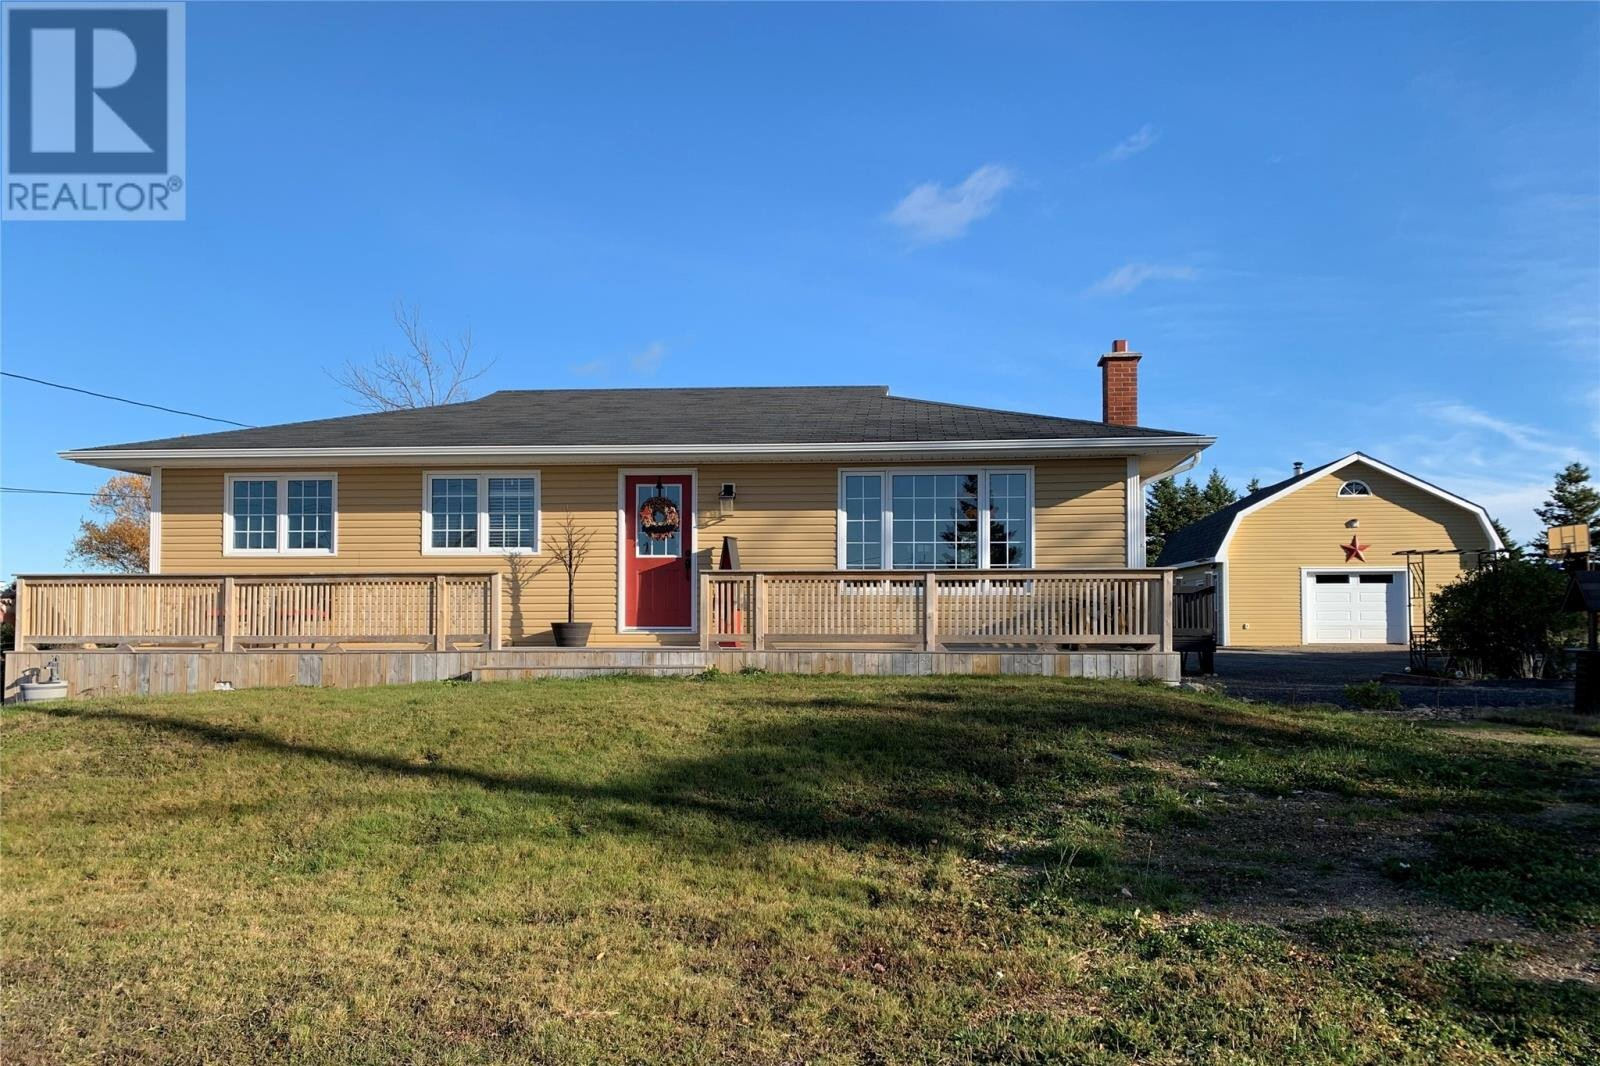 House for sale at 0 Main Hy Western Bay Newfoundland - MLS: 1223449